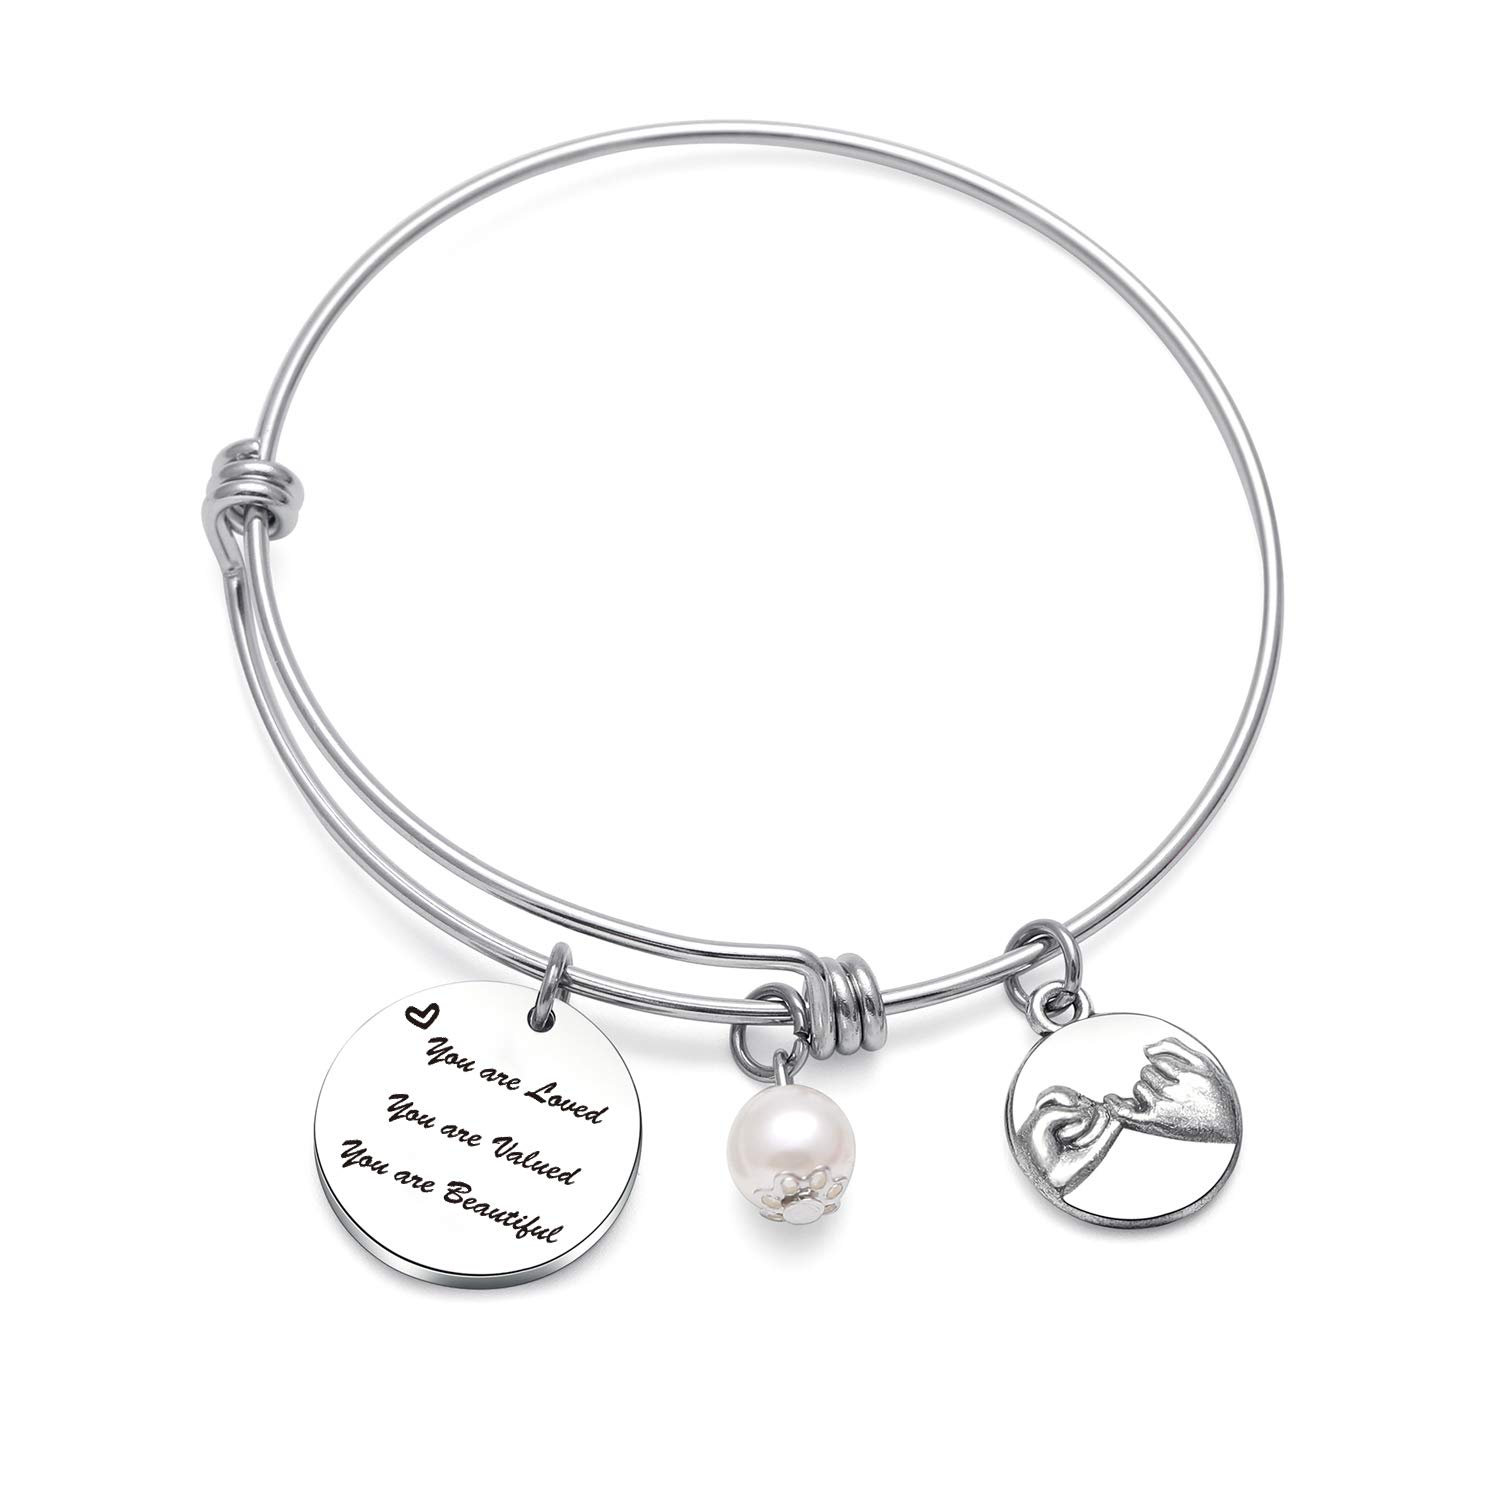 TzrNhm Blossom Inspirational Gift You are Loved You are Valued You are Beautiful Bracelet for Best Friends Sister Coworker Gift Wedding Birthday Gift